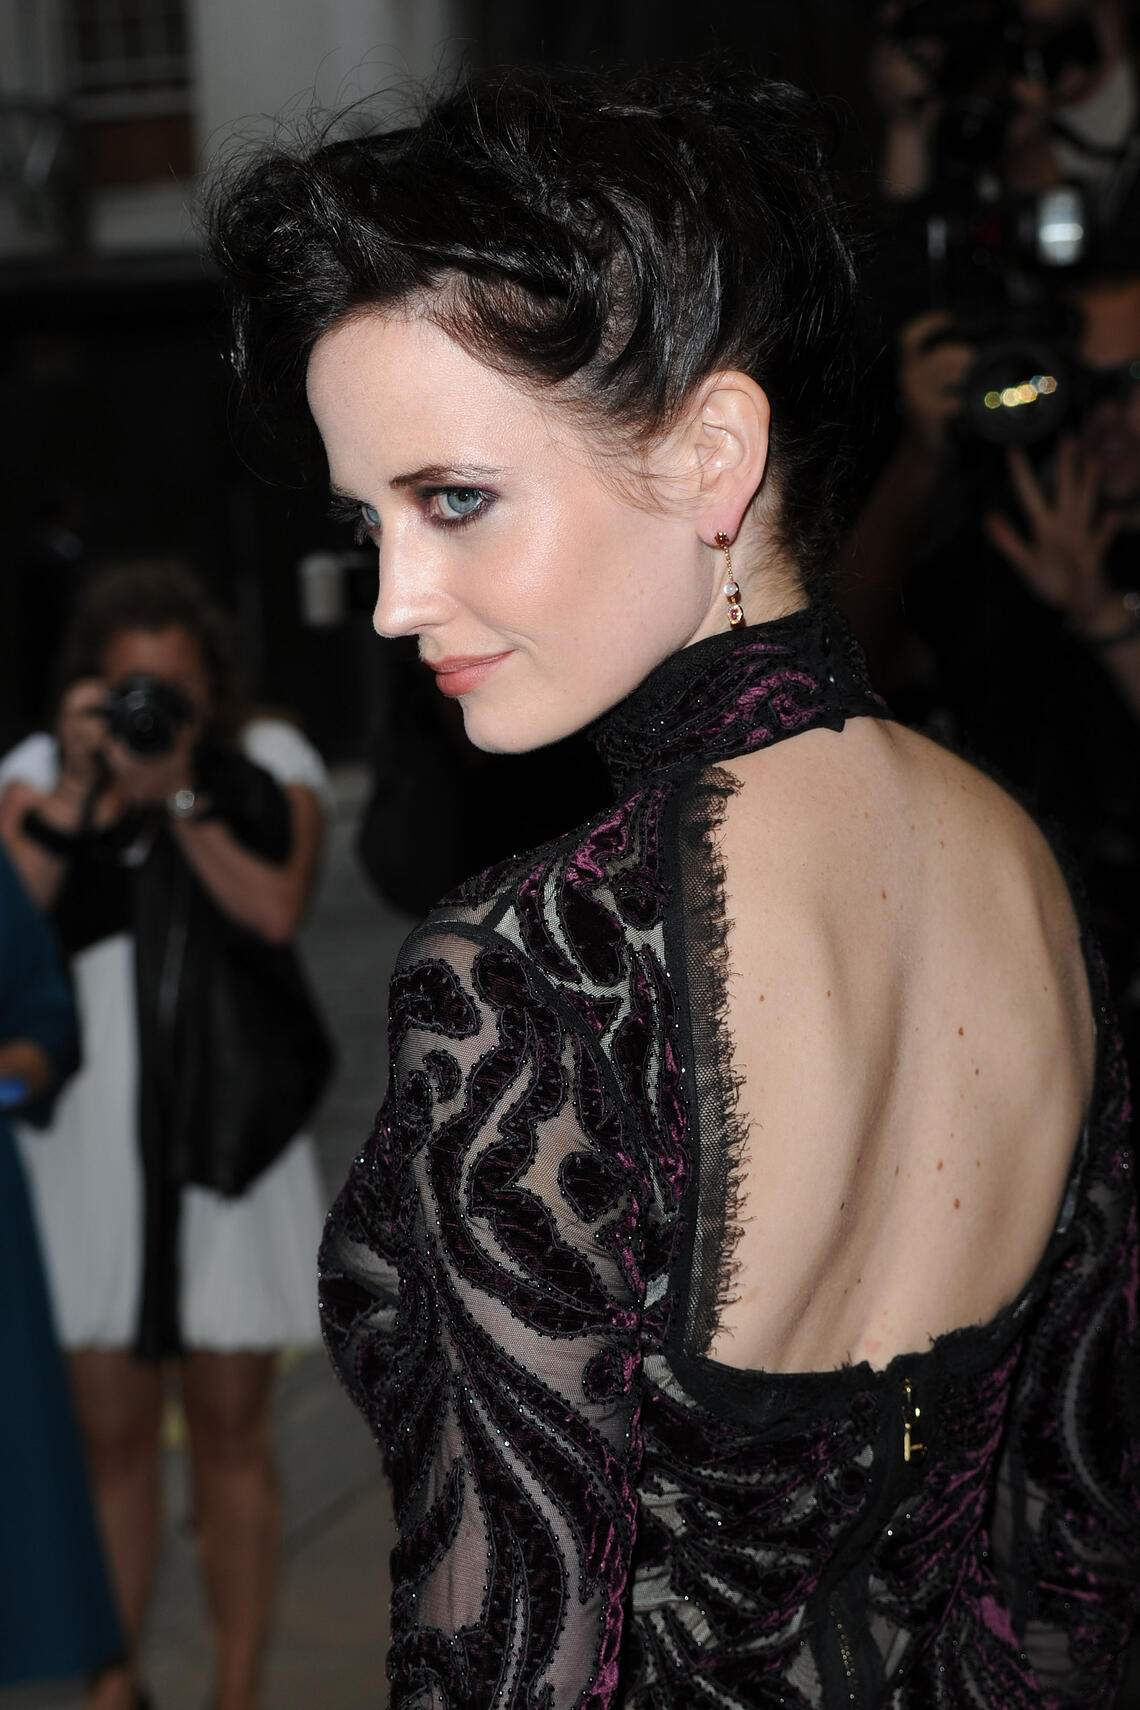 Eva Green Affäre Johnny Depp